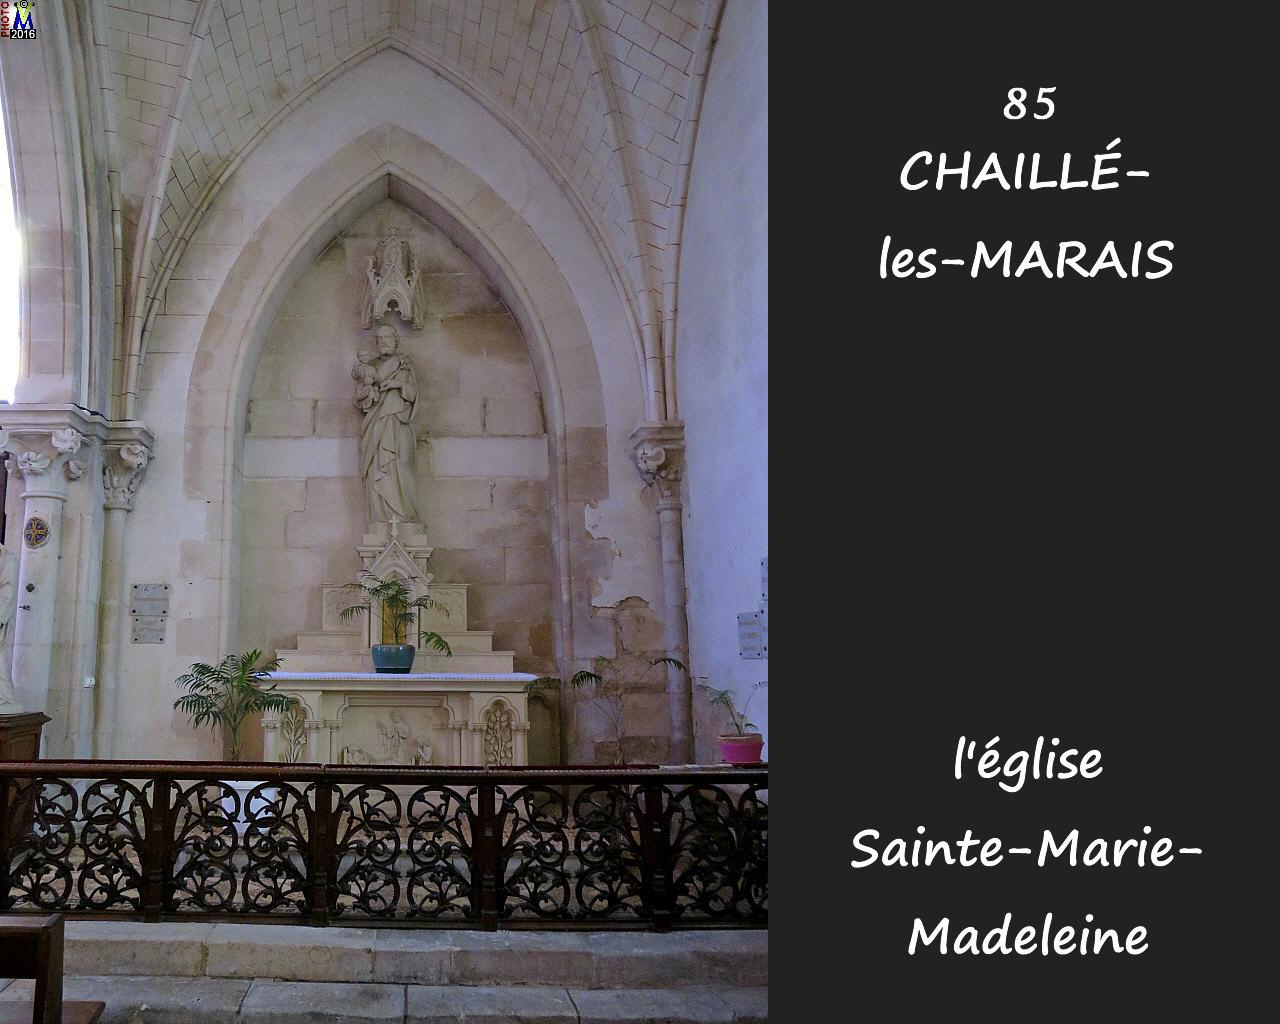 85CHAILLE-MARAIS_eglise_1226.jpg